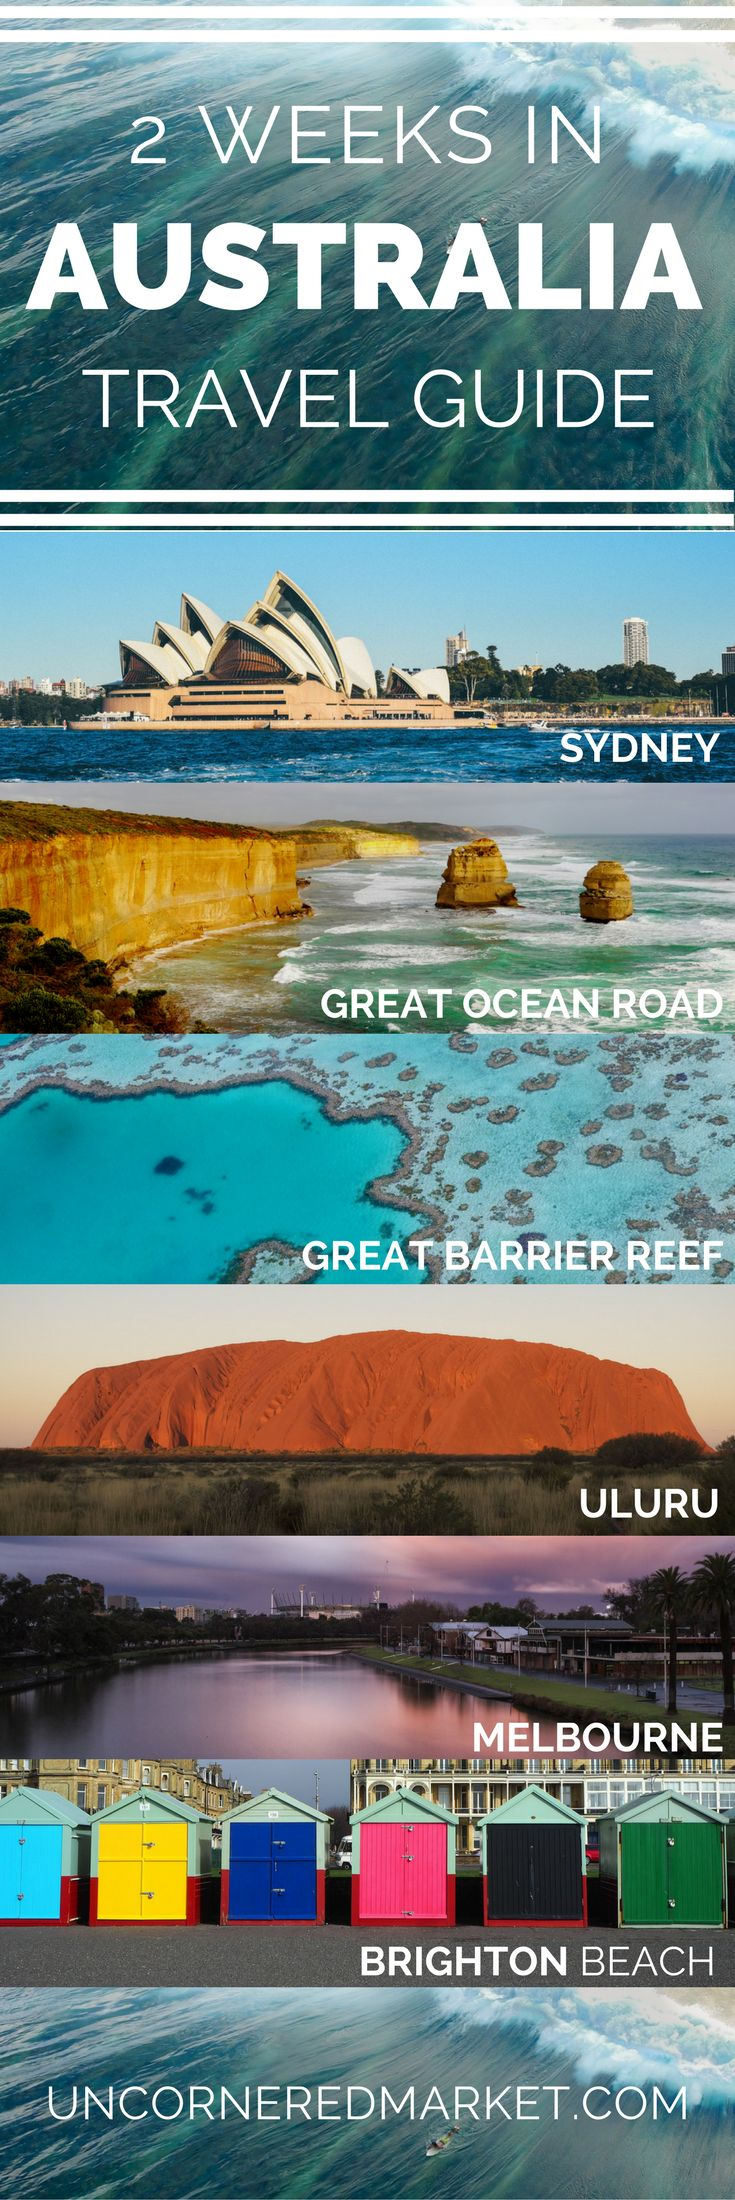 An experiential guide to exploring the top sites and destinations in Australia including Sydney, the Great Barrier Reef, Uluru, Melbourne and more. The ultimate 2-week Australia itinerary + practical tips for your trip. | Uncornered Market Travel Blog